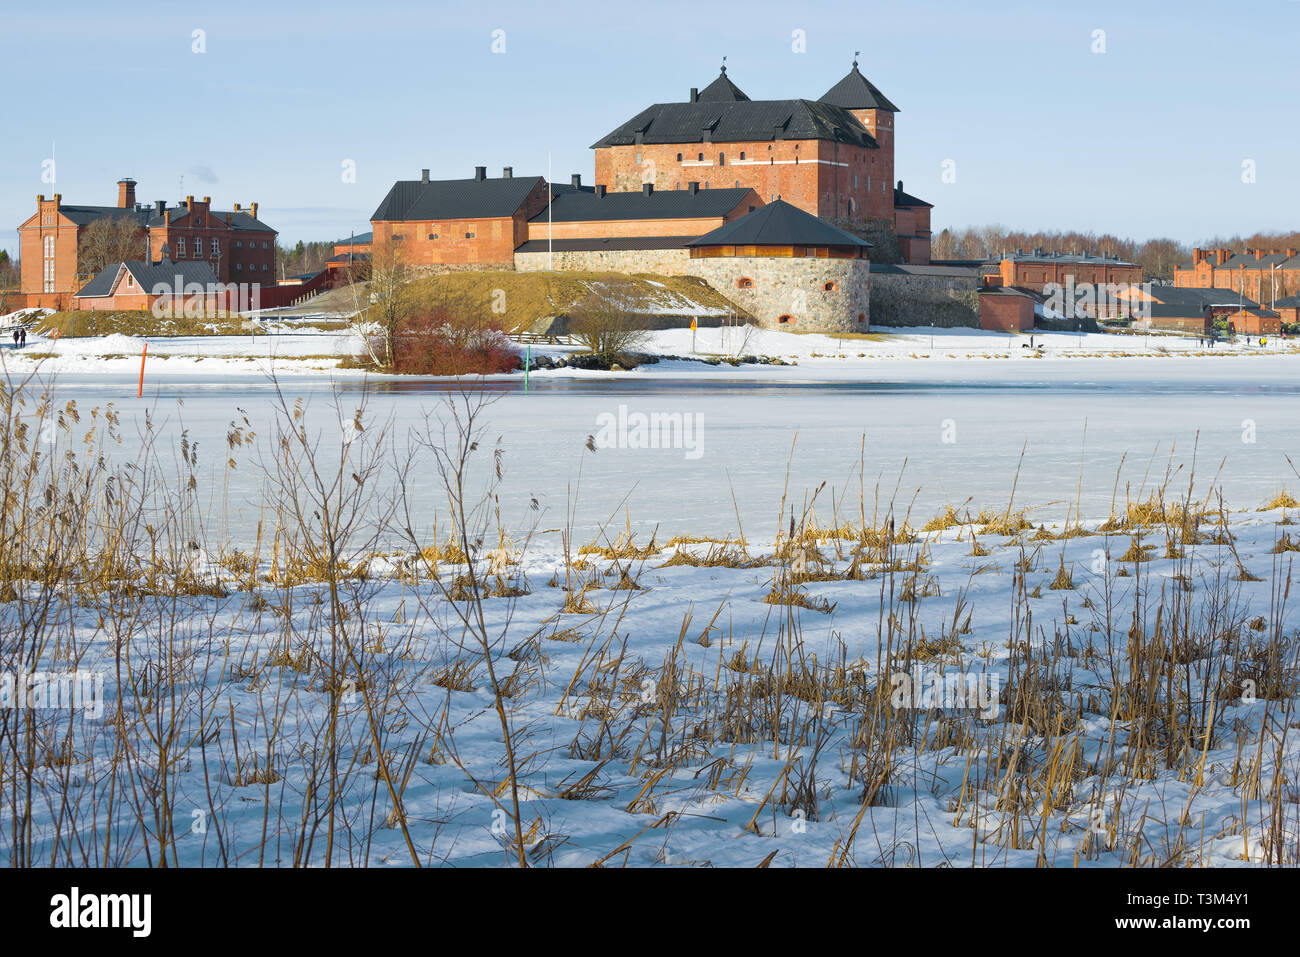 The old fortress-prison on the shores of Vanajavesi lake on a March afternoon. Hameenlinna, Finland Stock Photo